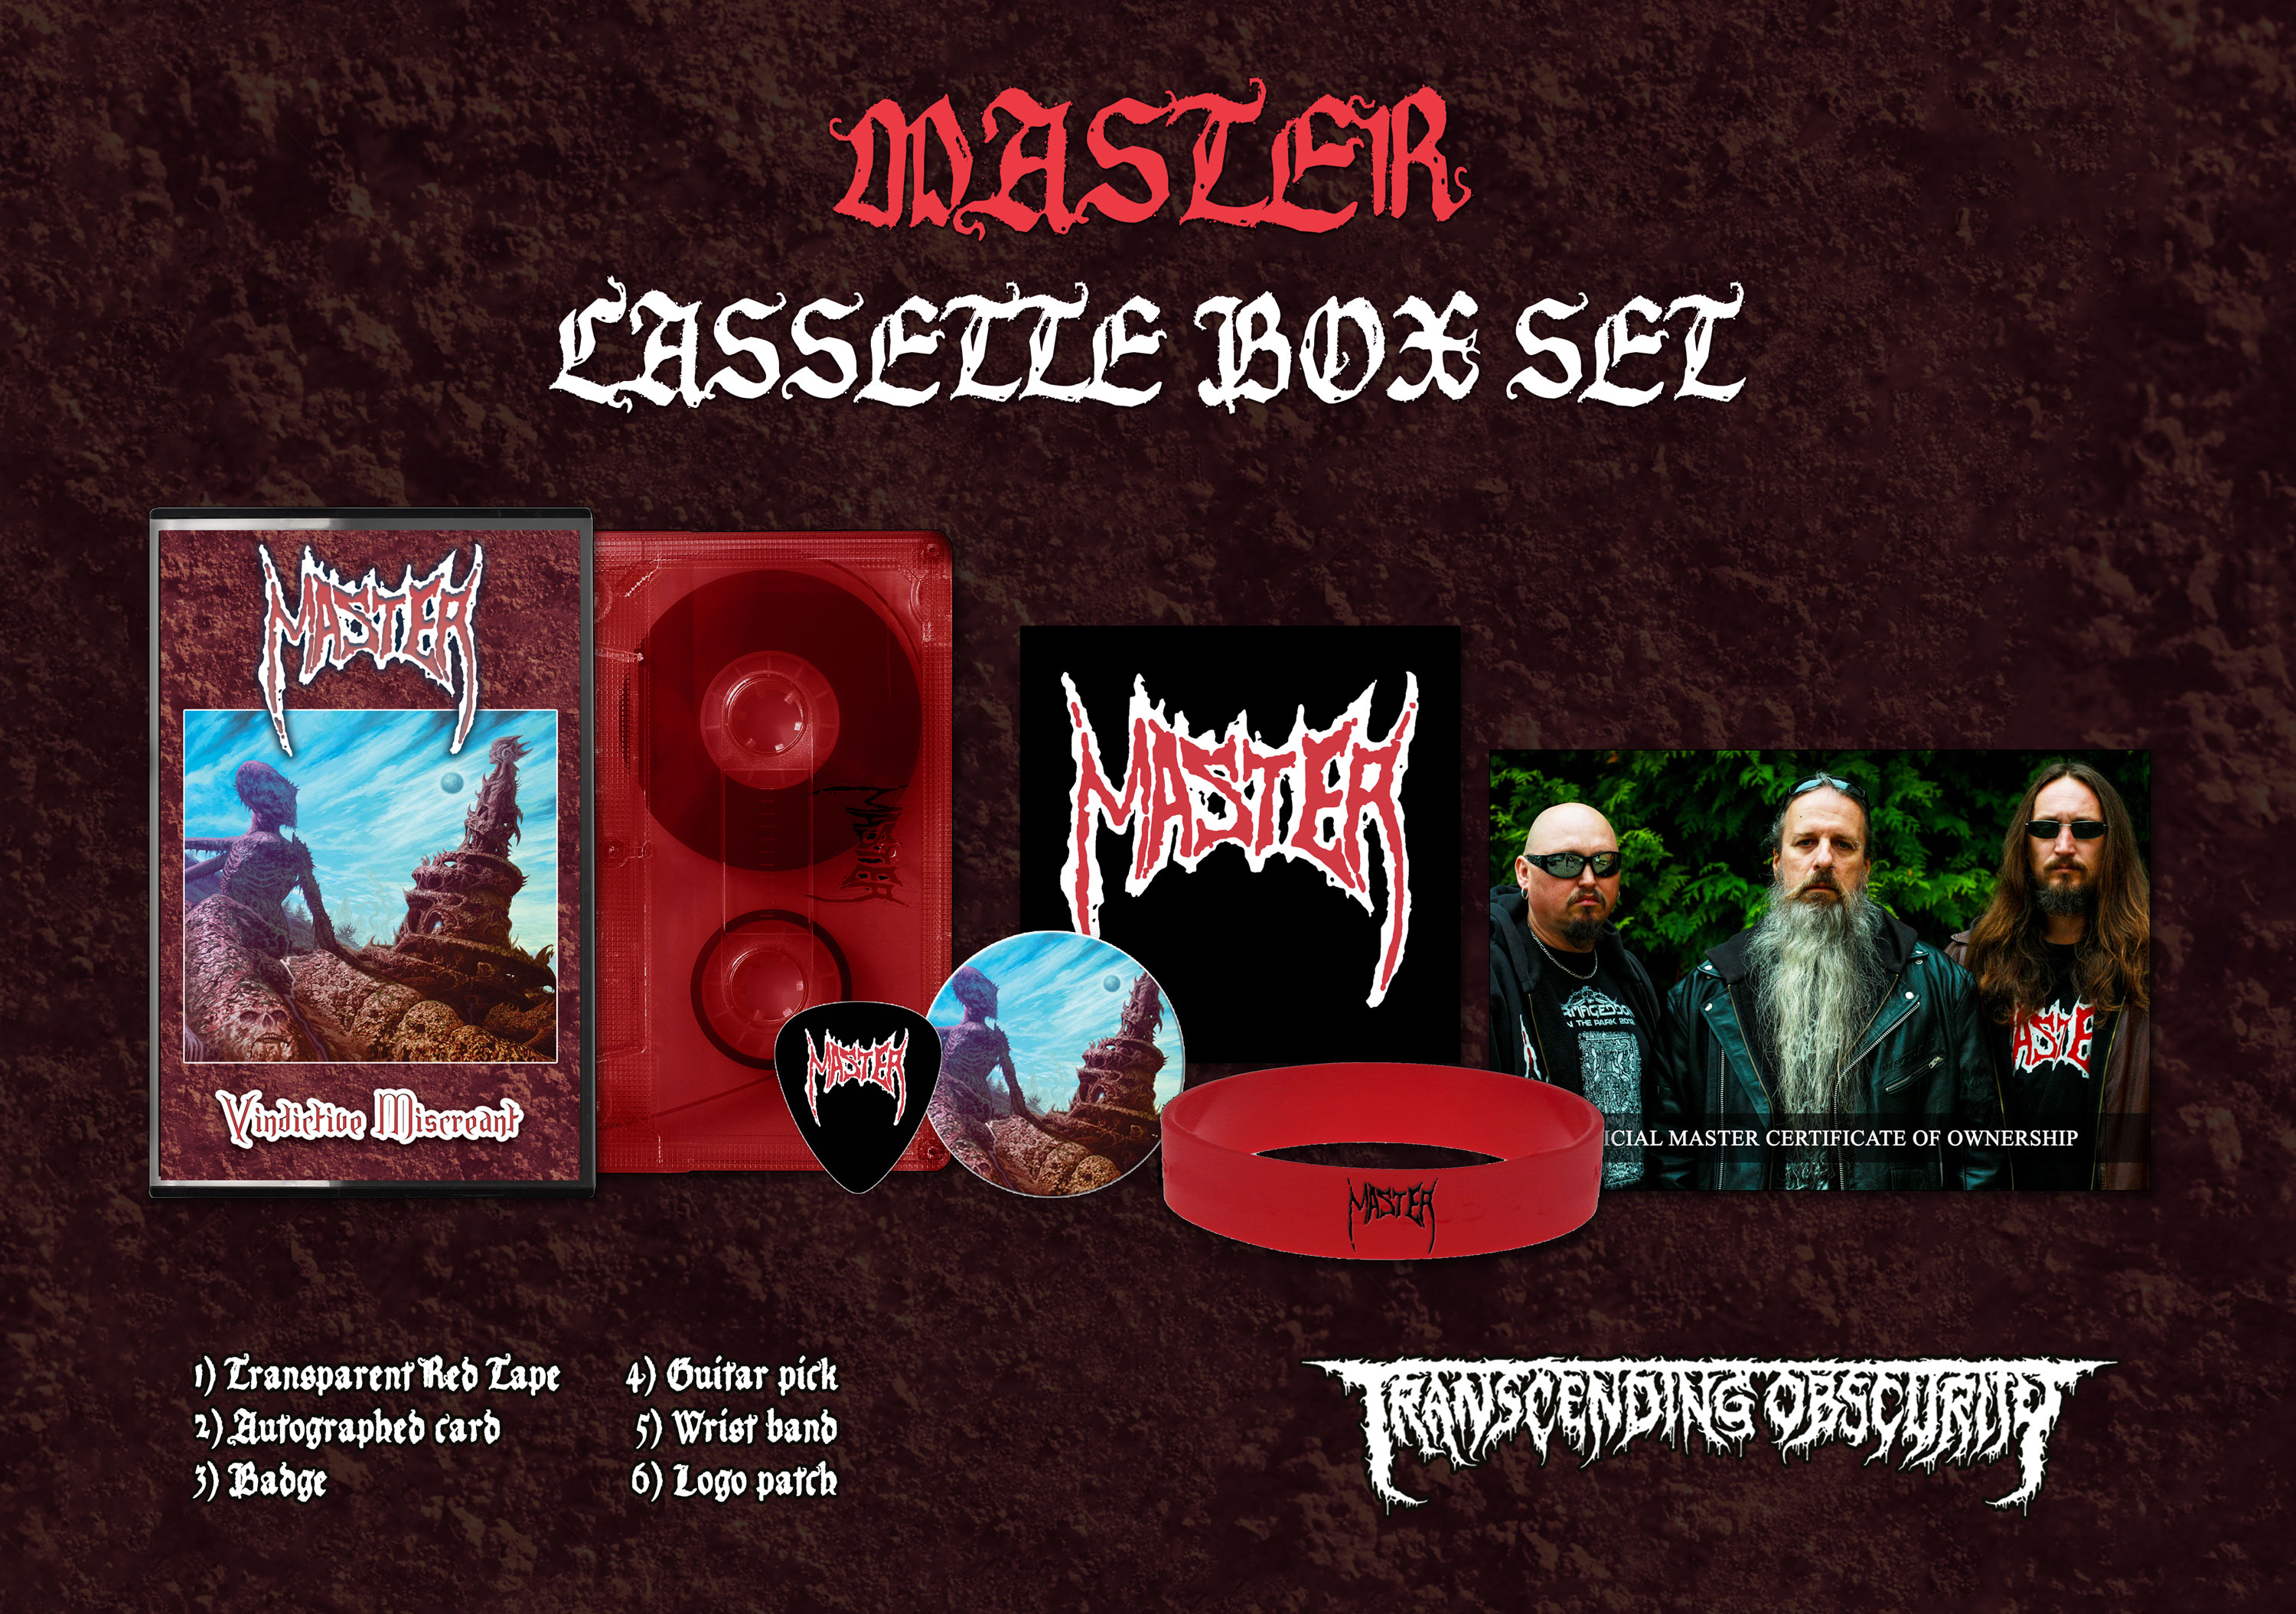 MASTER (Czech Republic) - Vindictive Miscreant Cassette Box Set (Limited to 50)